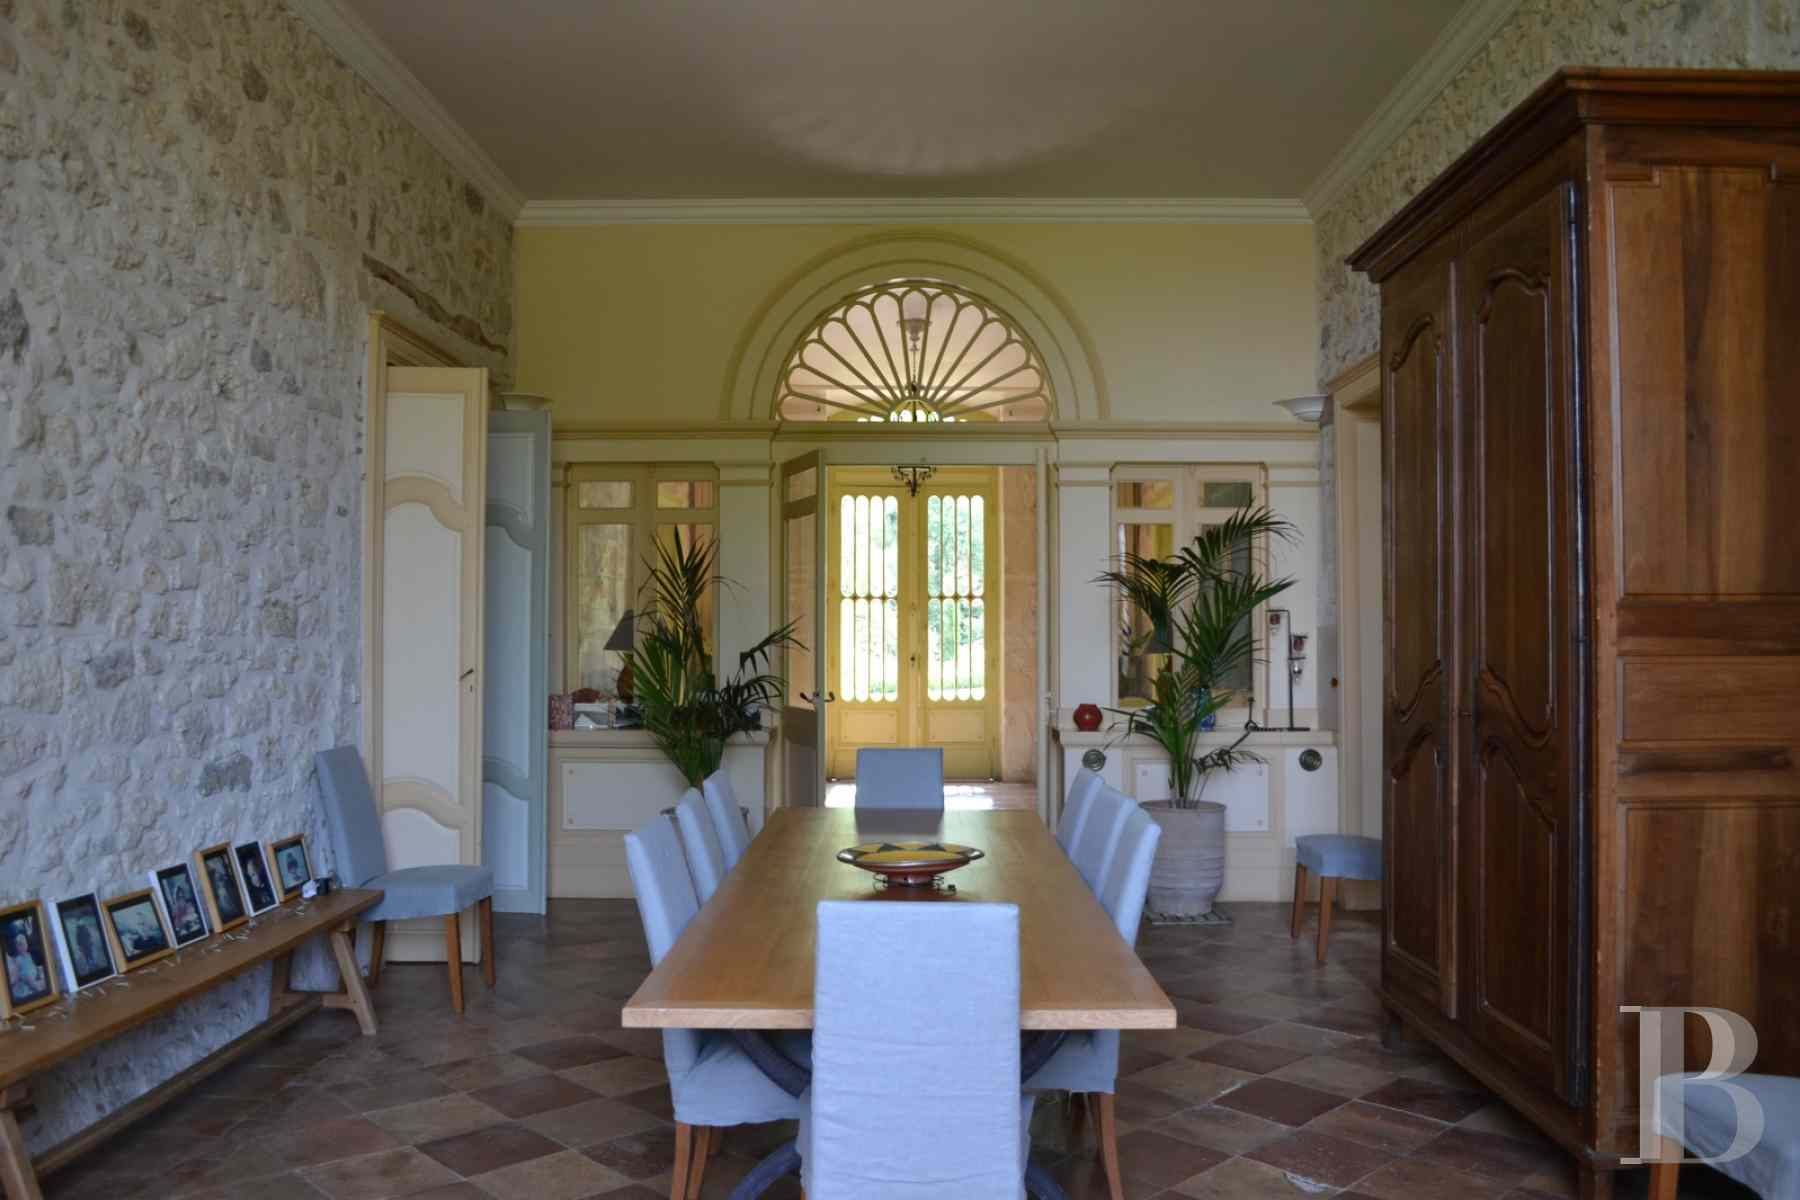 property for sale France aquitaine property 18th - 14 zoom